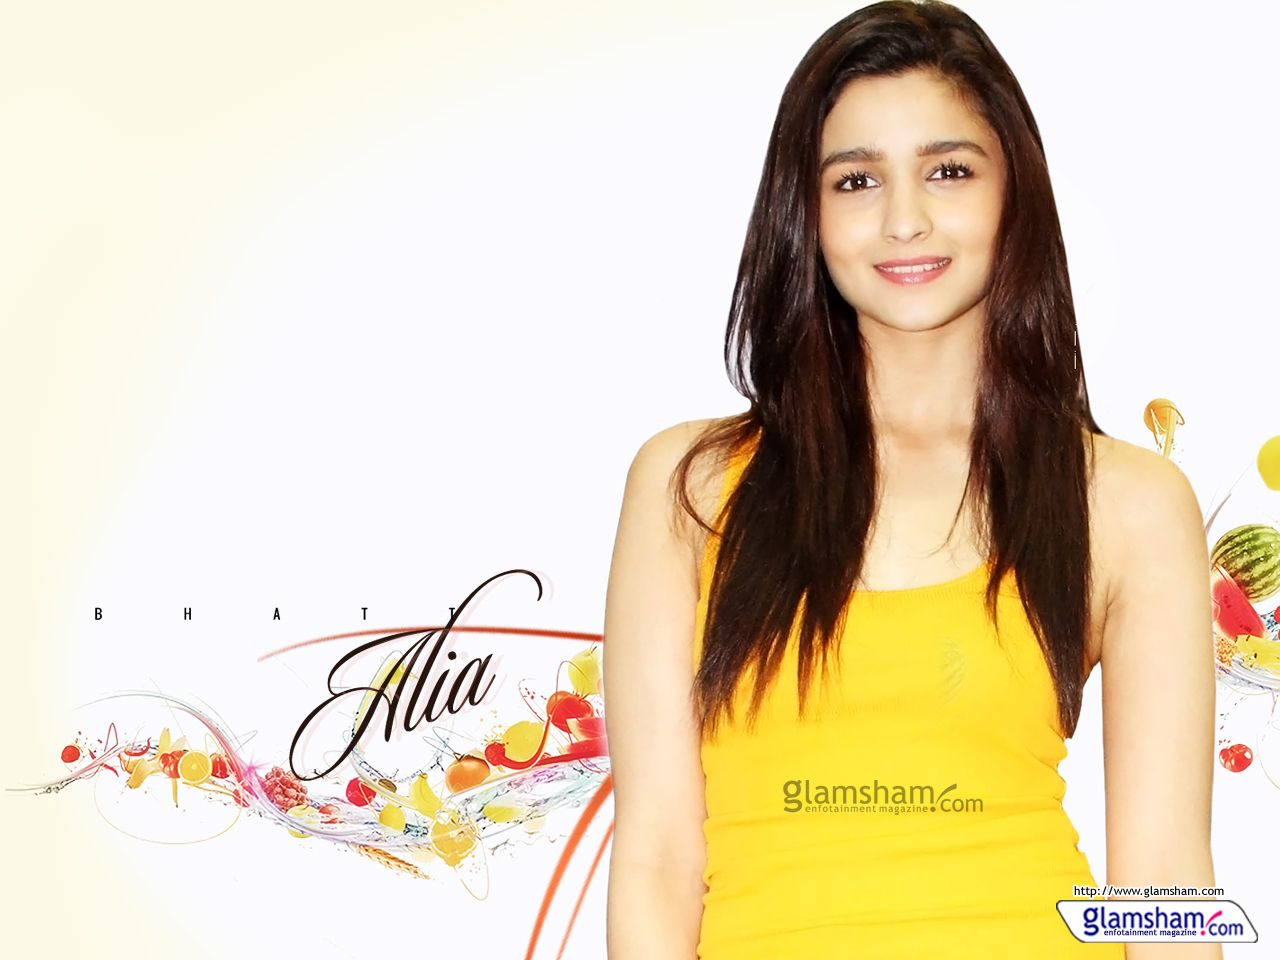 alia bhatt high definition wallpapers hd images, hd pictures 1024